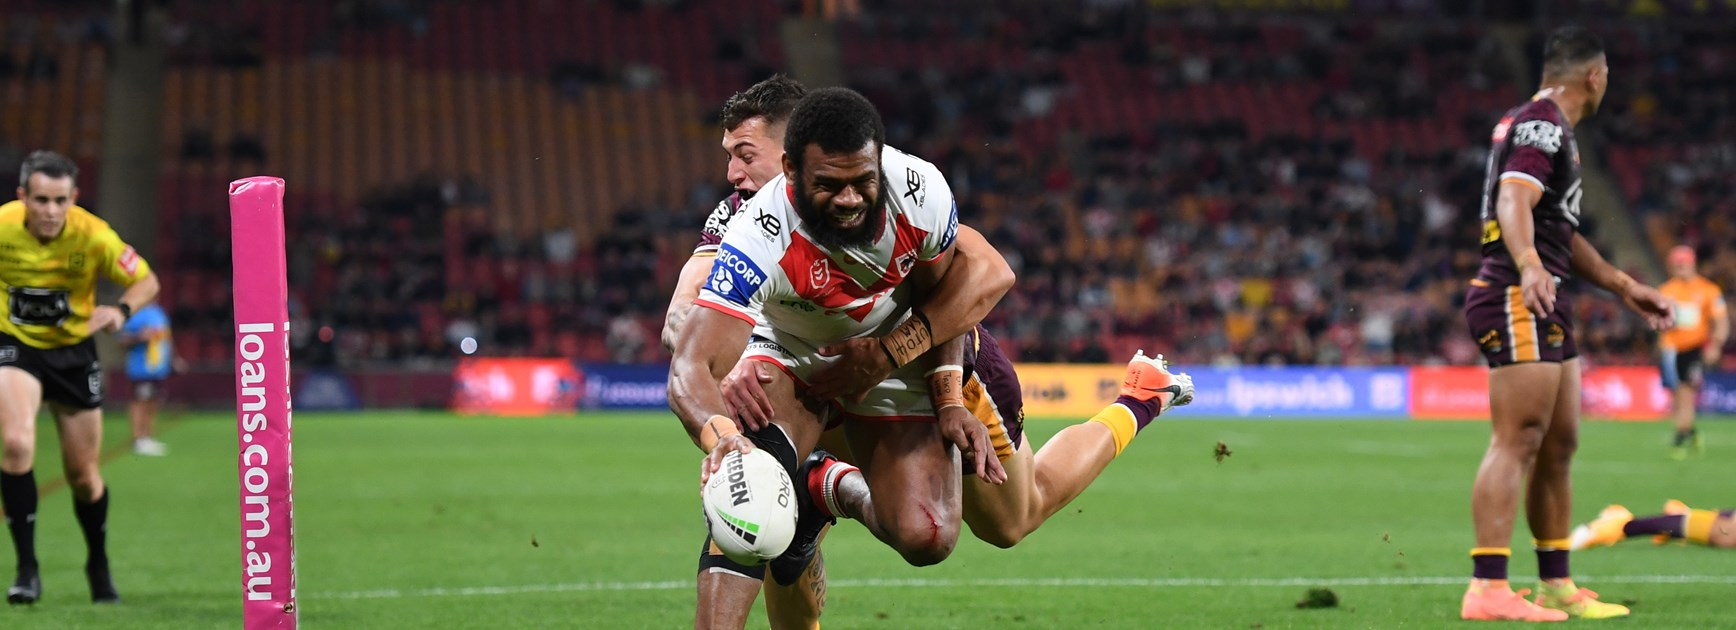 Dragons 'just scratching surface' with Ravalawa: Young